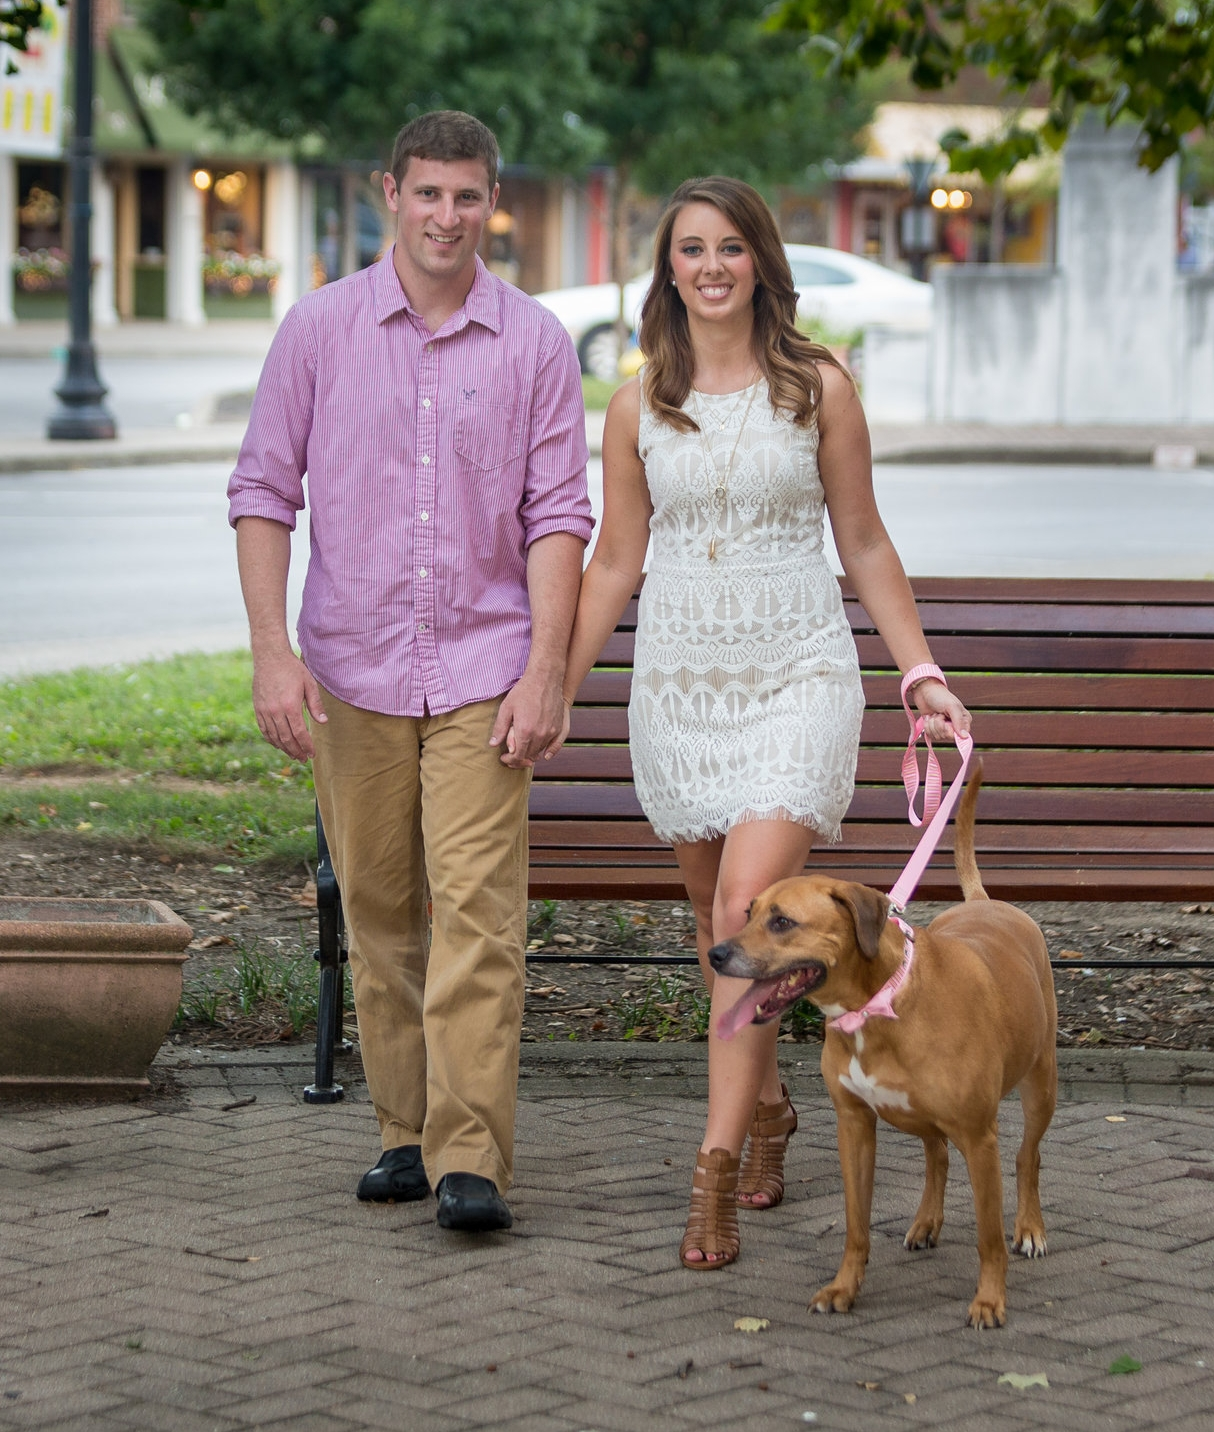 Leigh Achenbach, the owner of Suddenly Simple Professional Organizing and her husband Joey with their dog Nala.